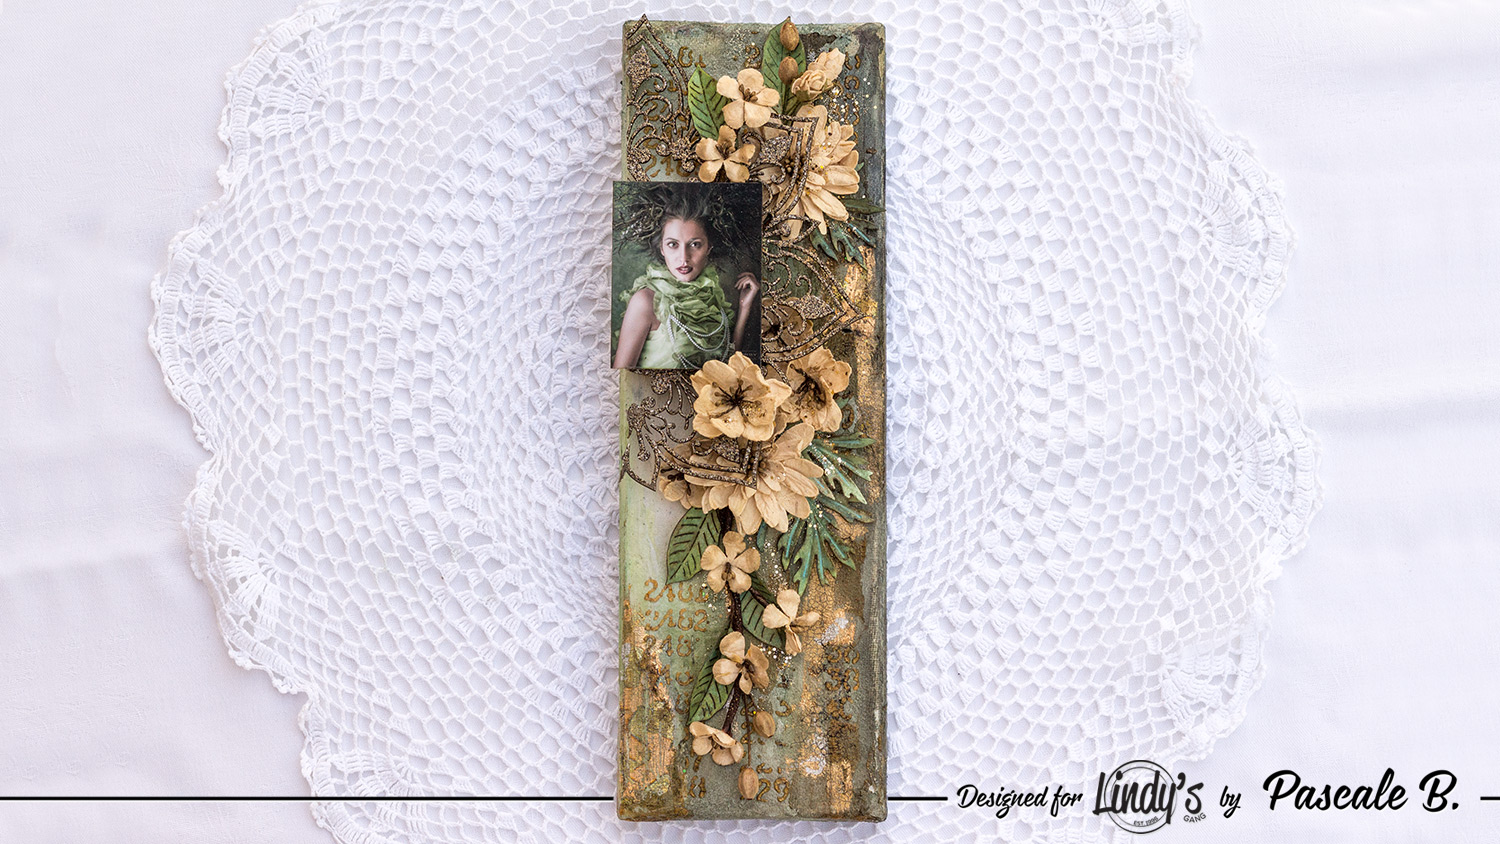 Green Lady - Mixed media canvas by Pascale B.